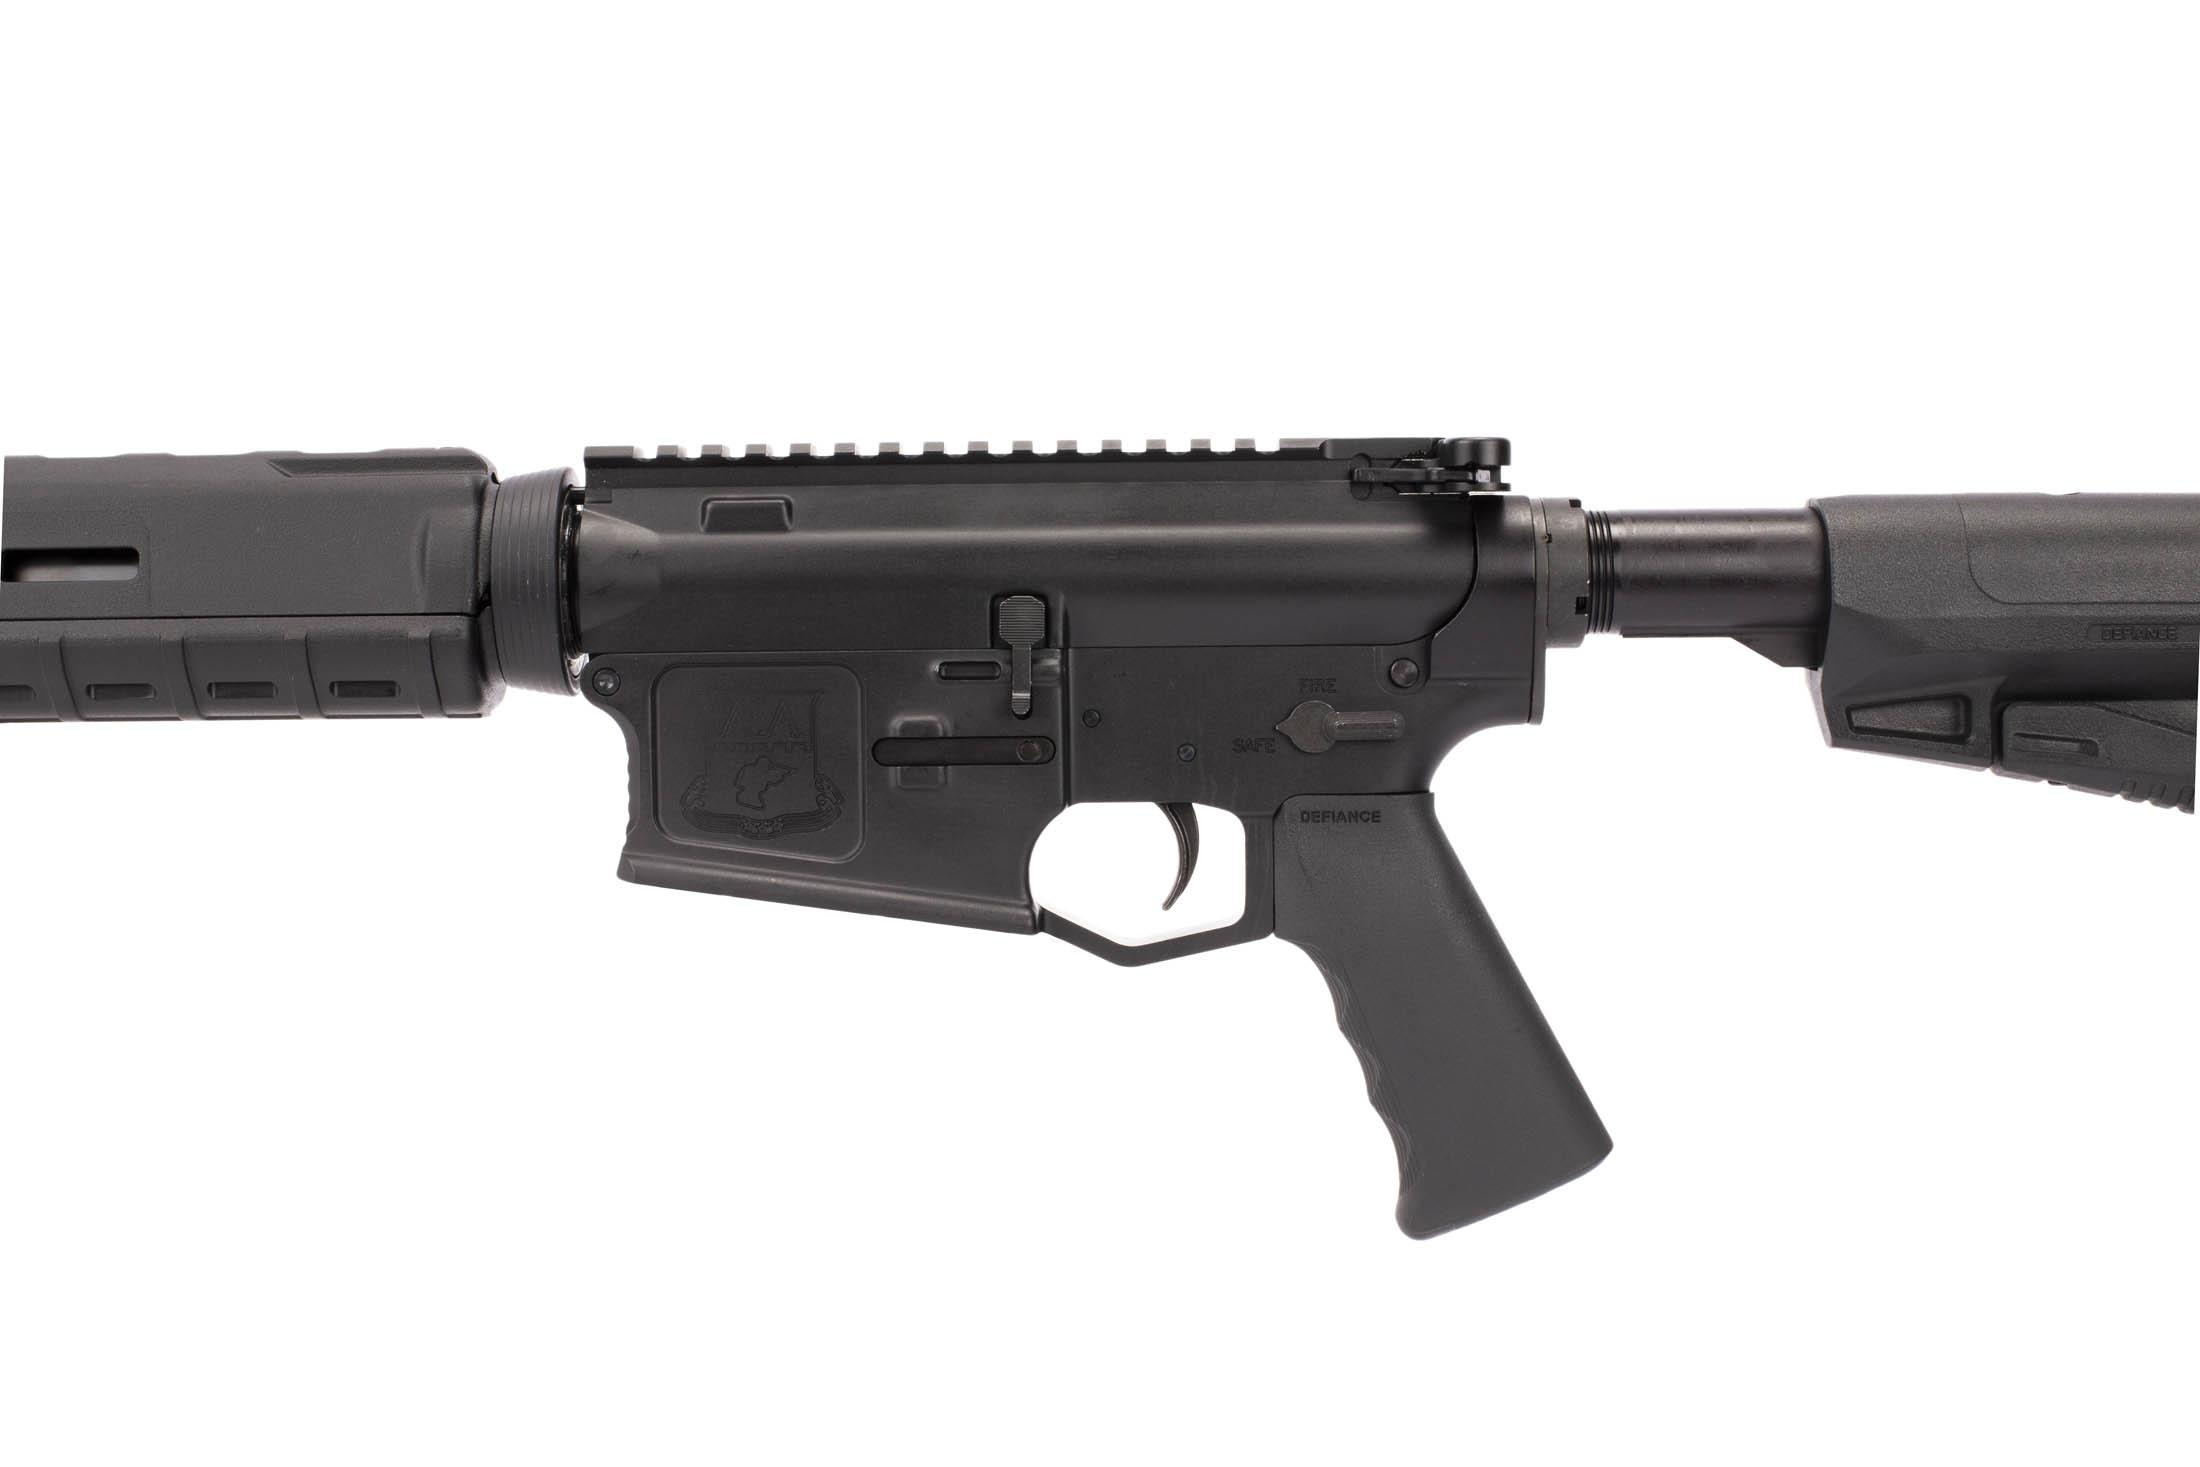 Adams Arms 16 in gas piston AR rifle has an extended trigger guard, Defiance pistol grip, and MIL-SPEC safety